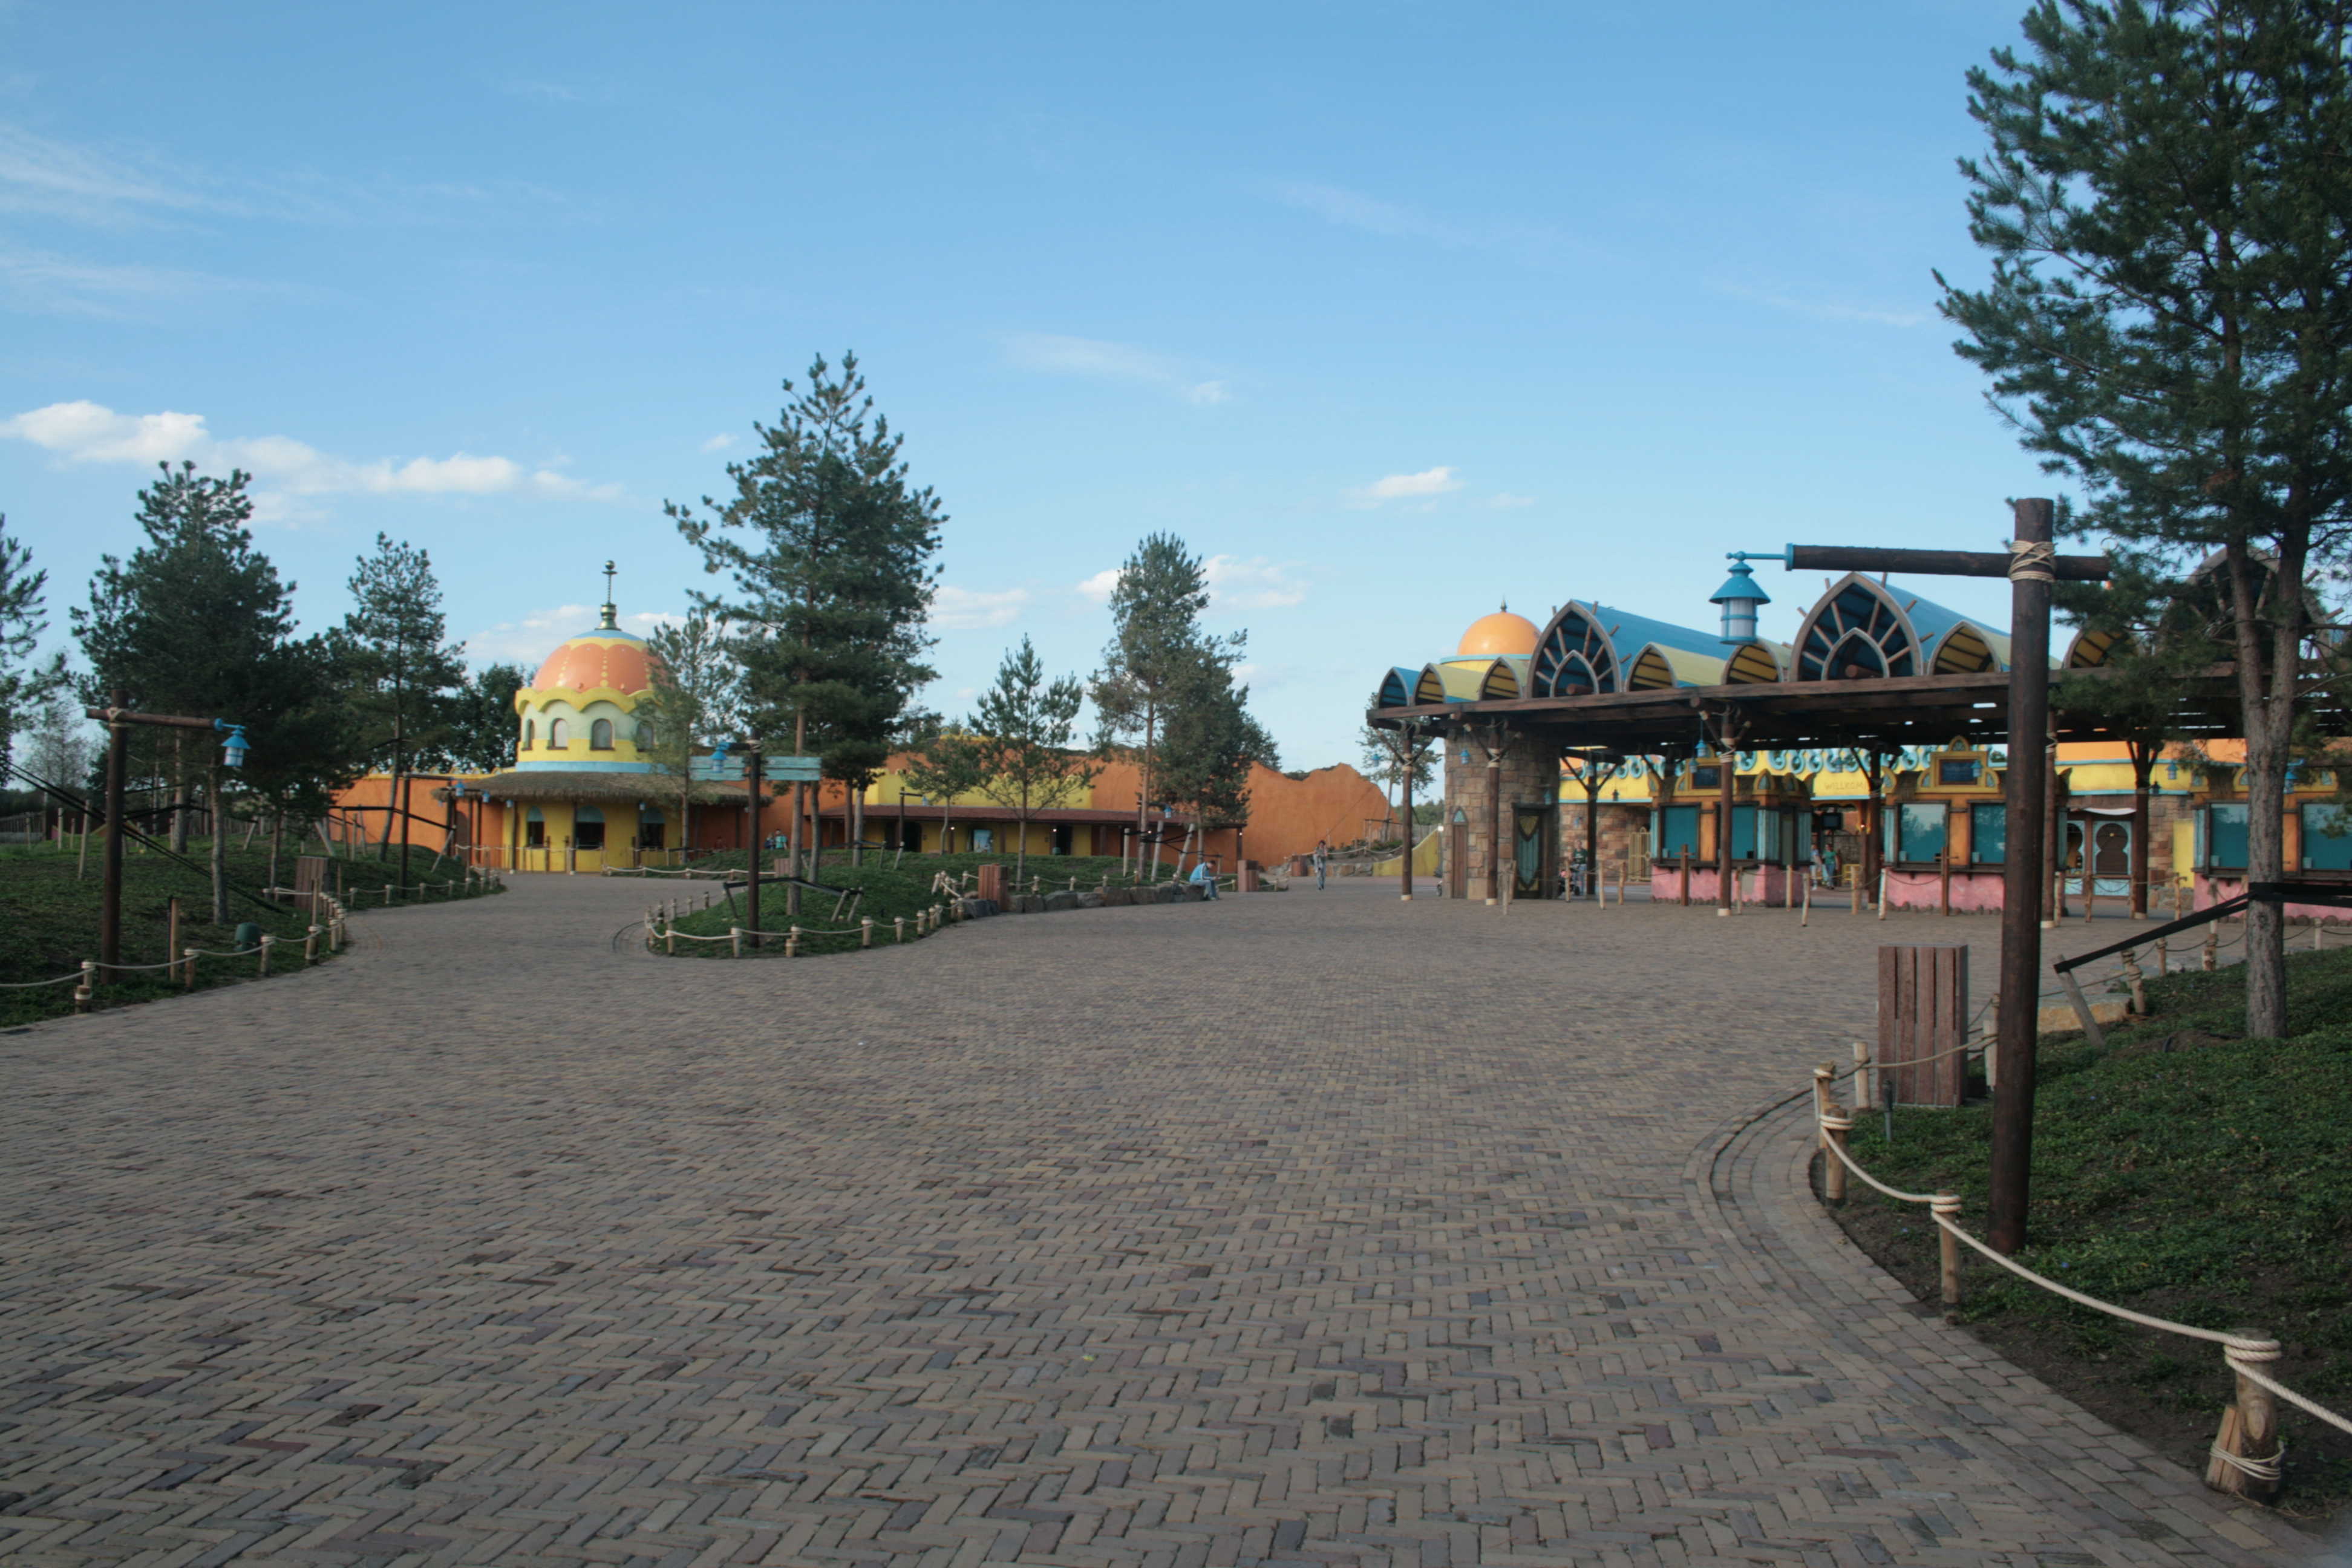 Toverland Entree.File Toverland Entree Jpg Wikimedia Commons